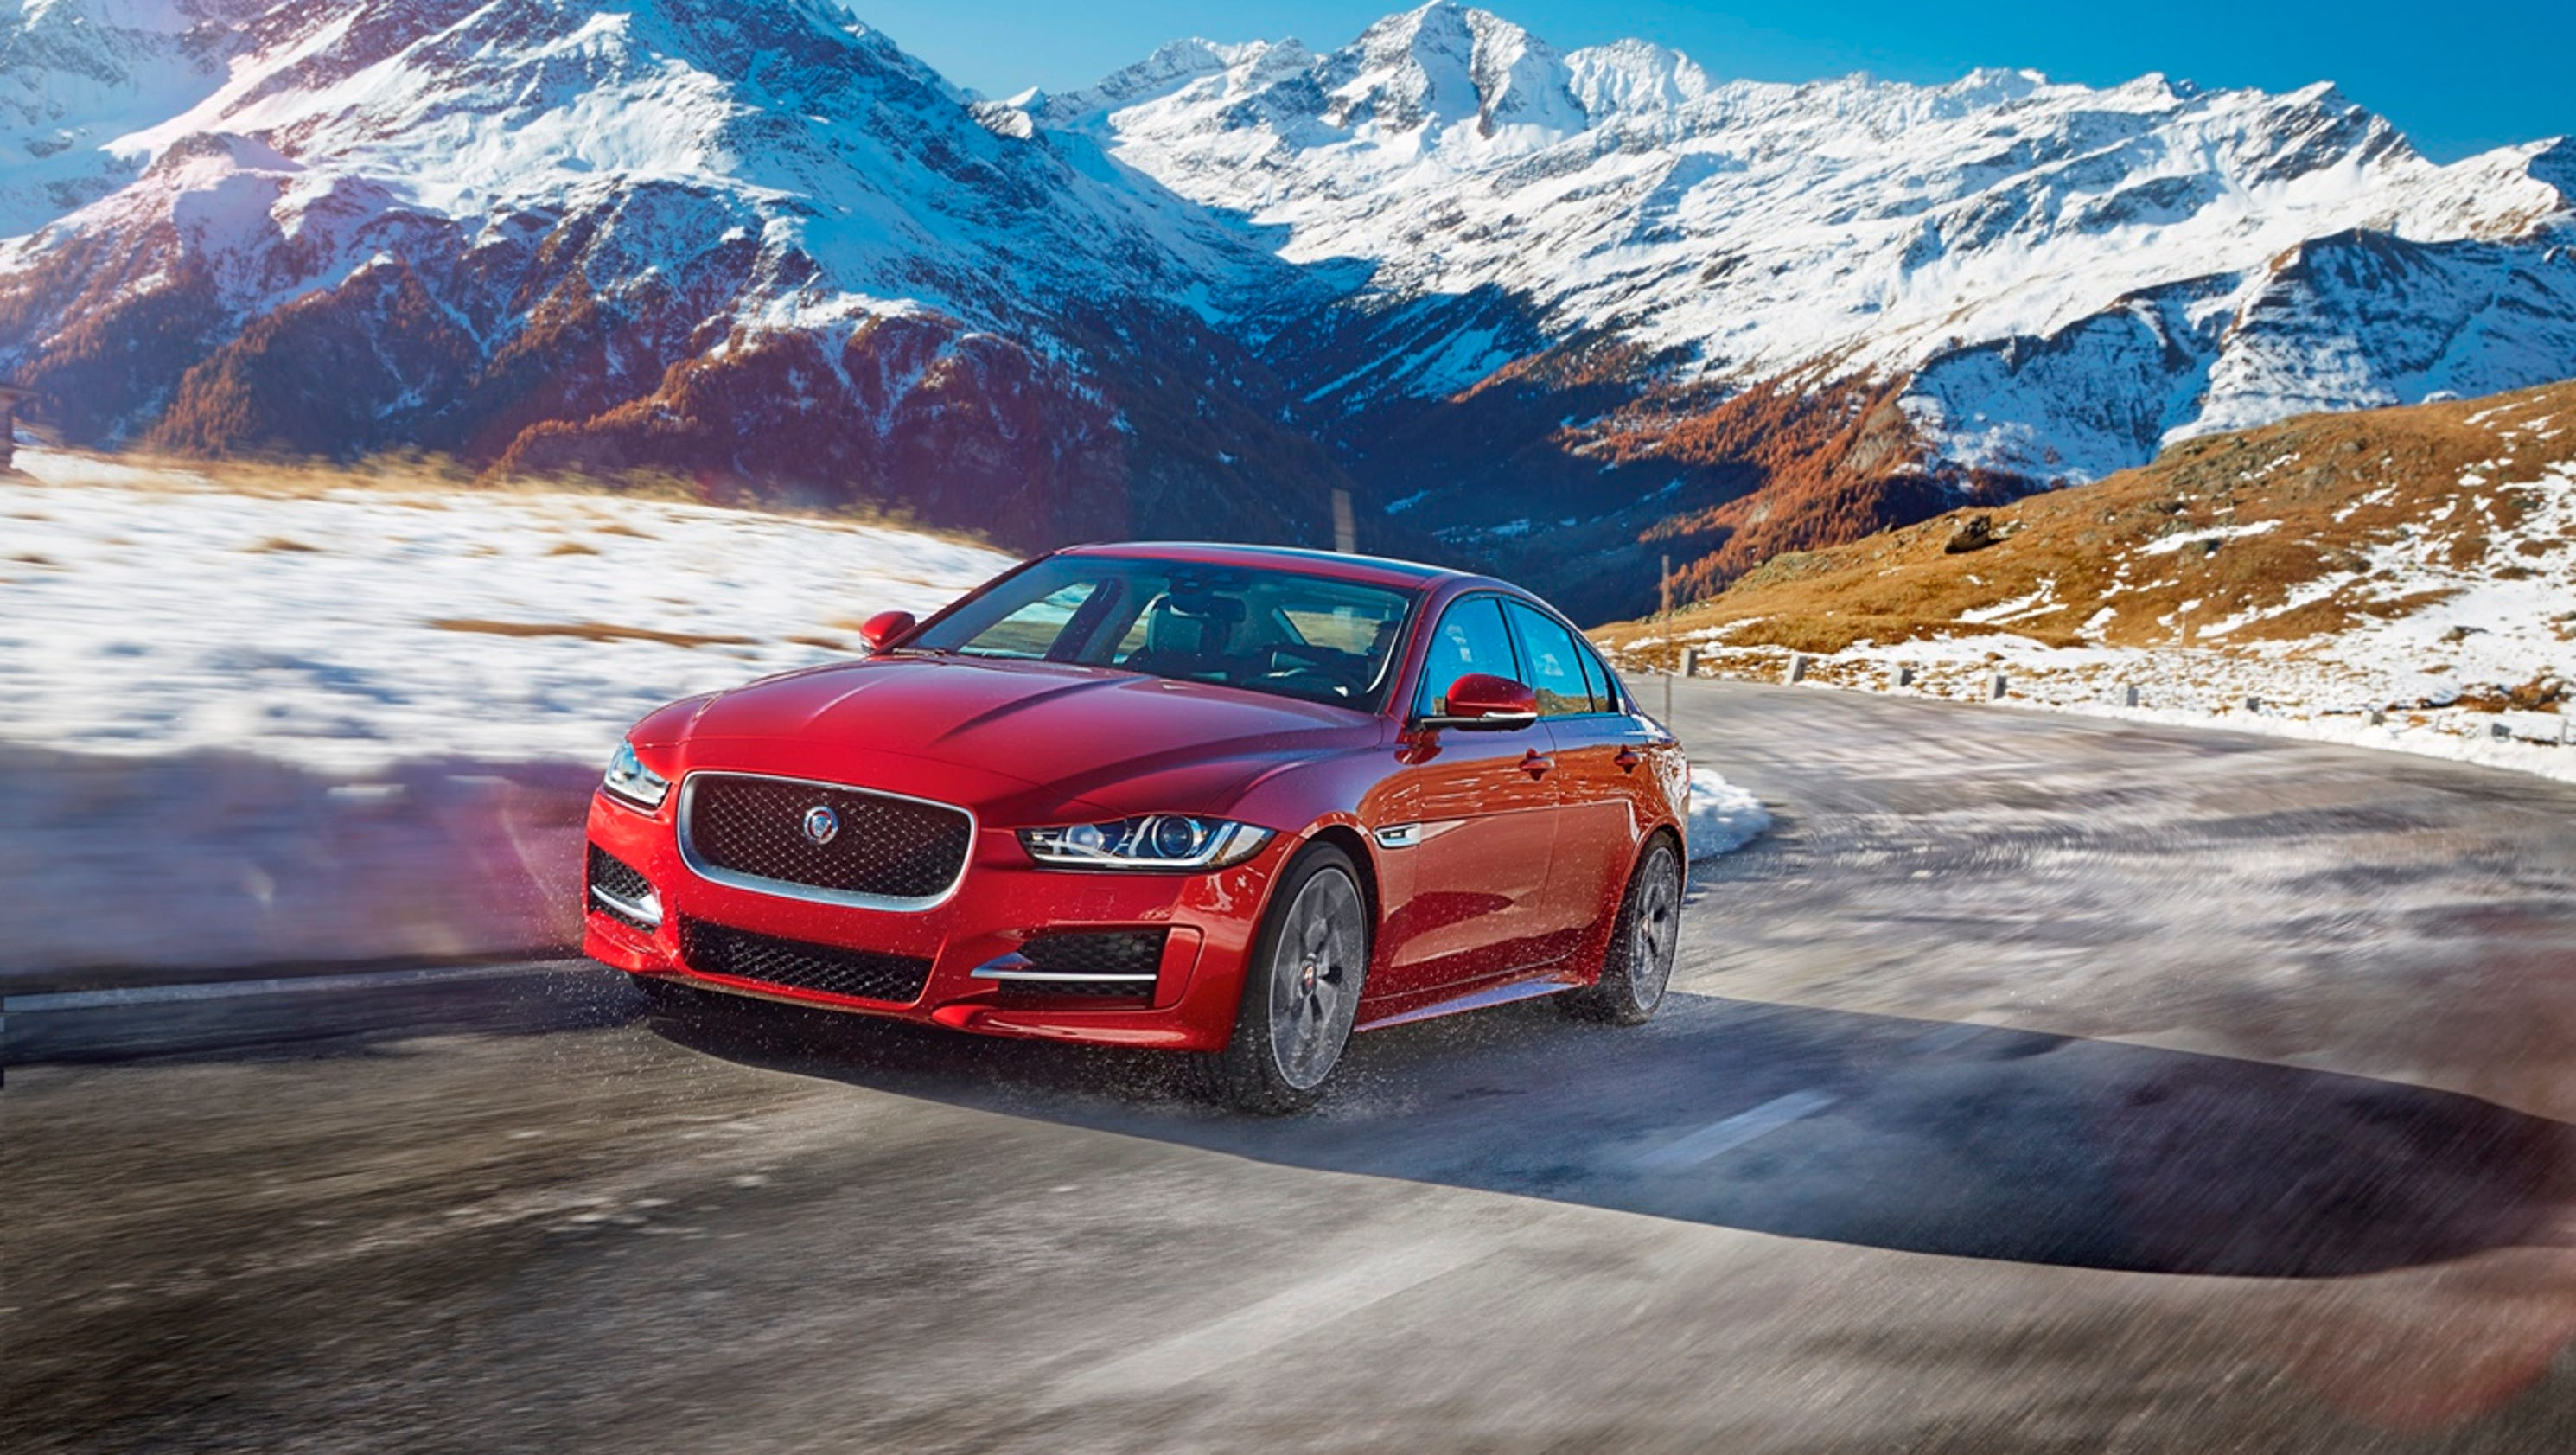 auto jaguar car glendale coupons west freecharge beverly hollywood deals sava in salesnew los hills leasing all pasadena dealership xekax and lease postpaid specials for angeles burbank